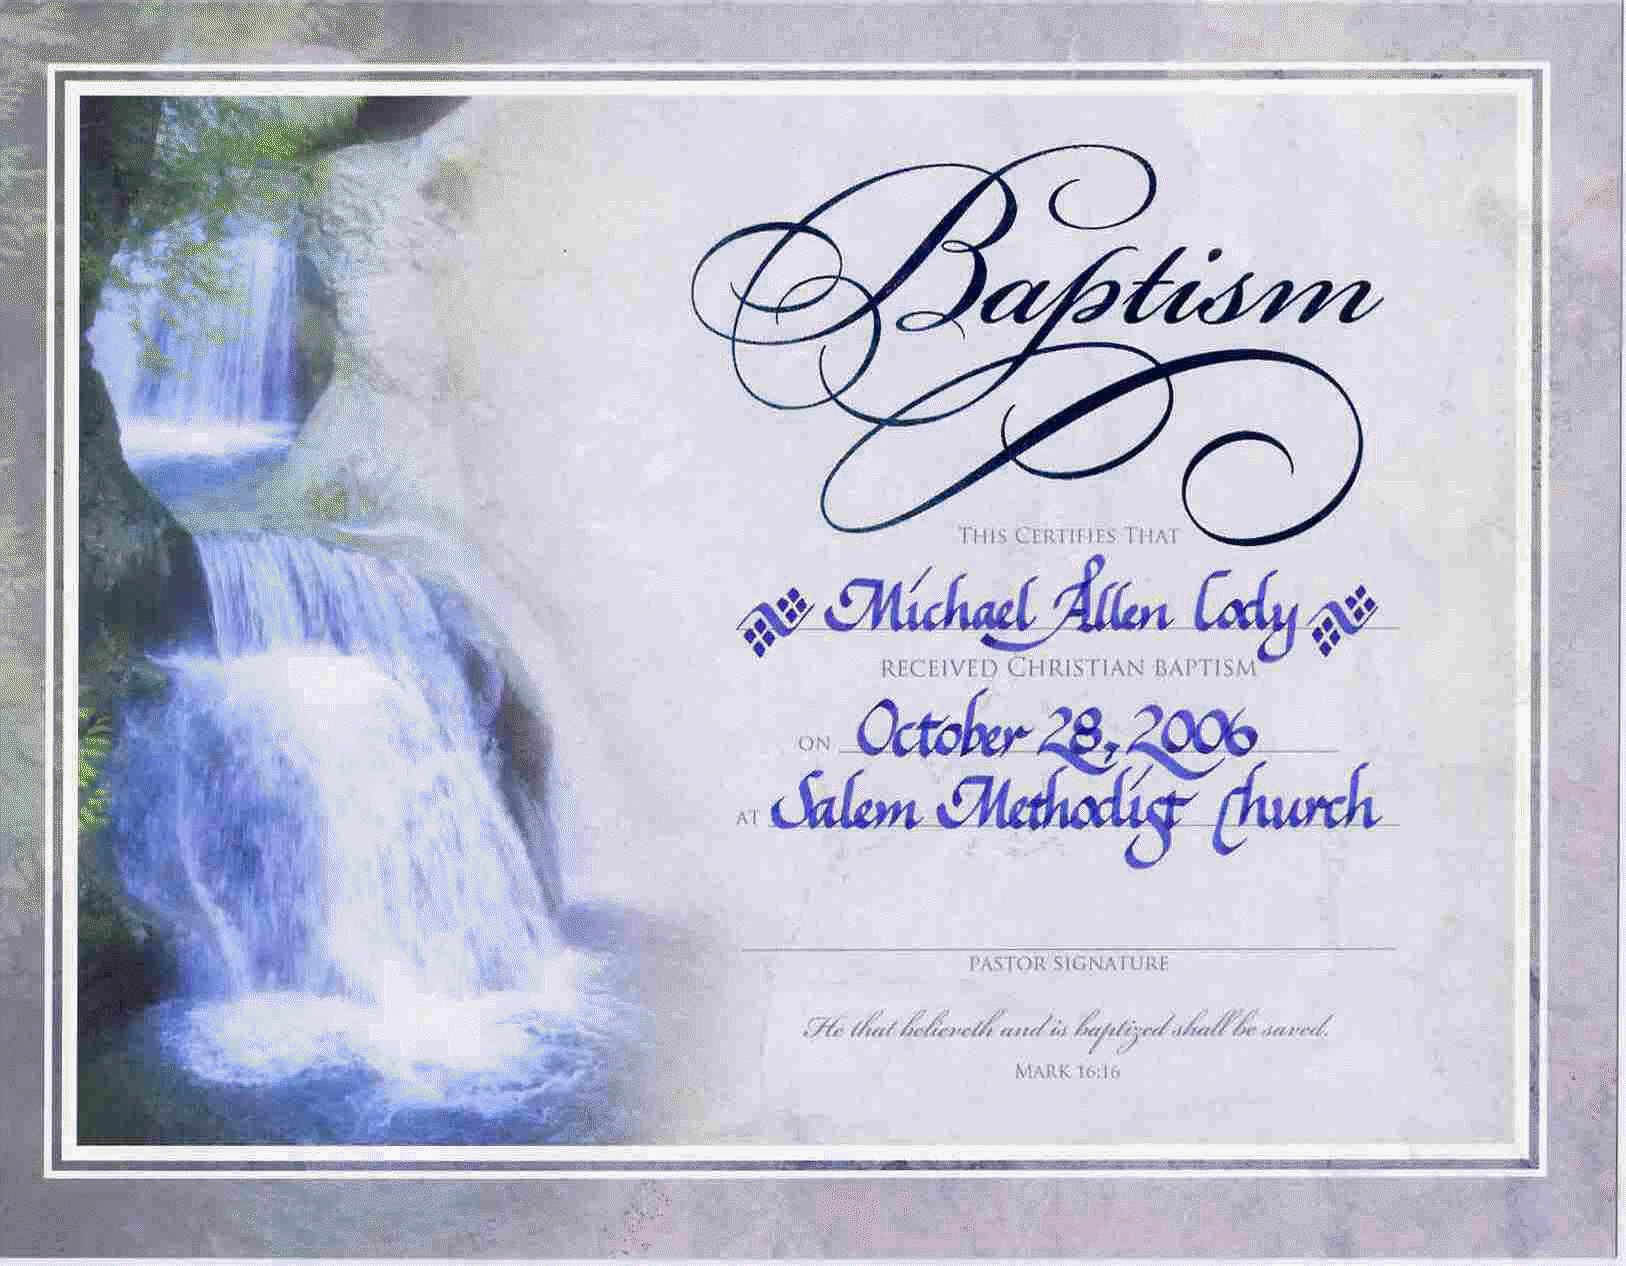 Water Baptism Certificate Templateencephaloscom For Baptism Certificate Template Download